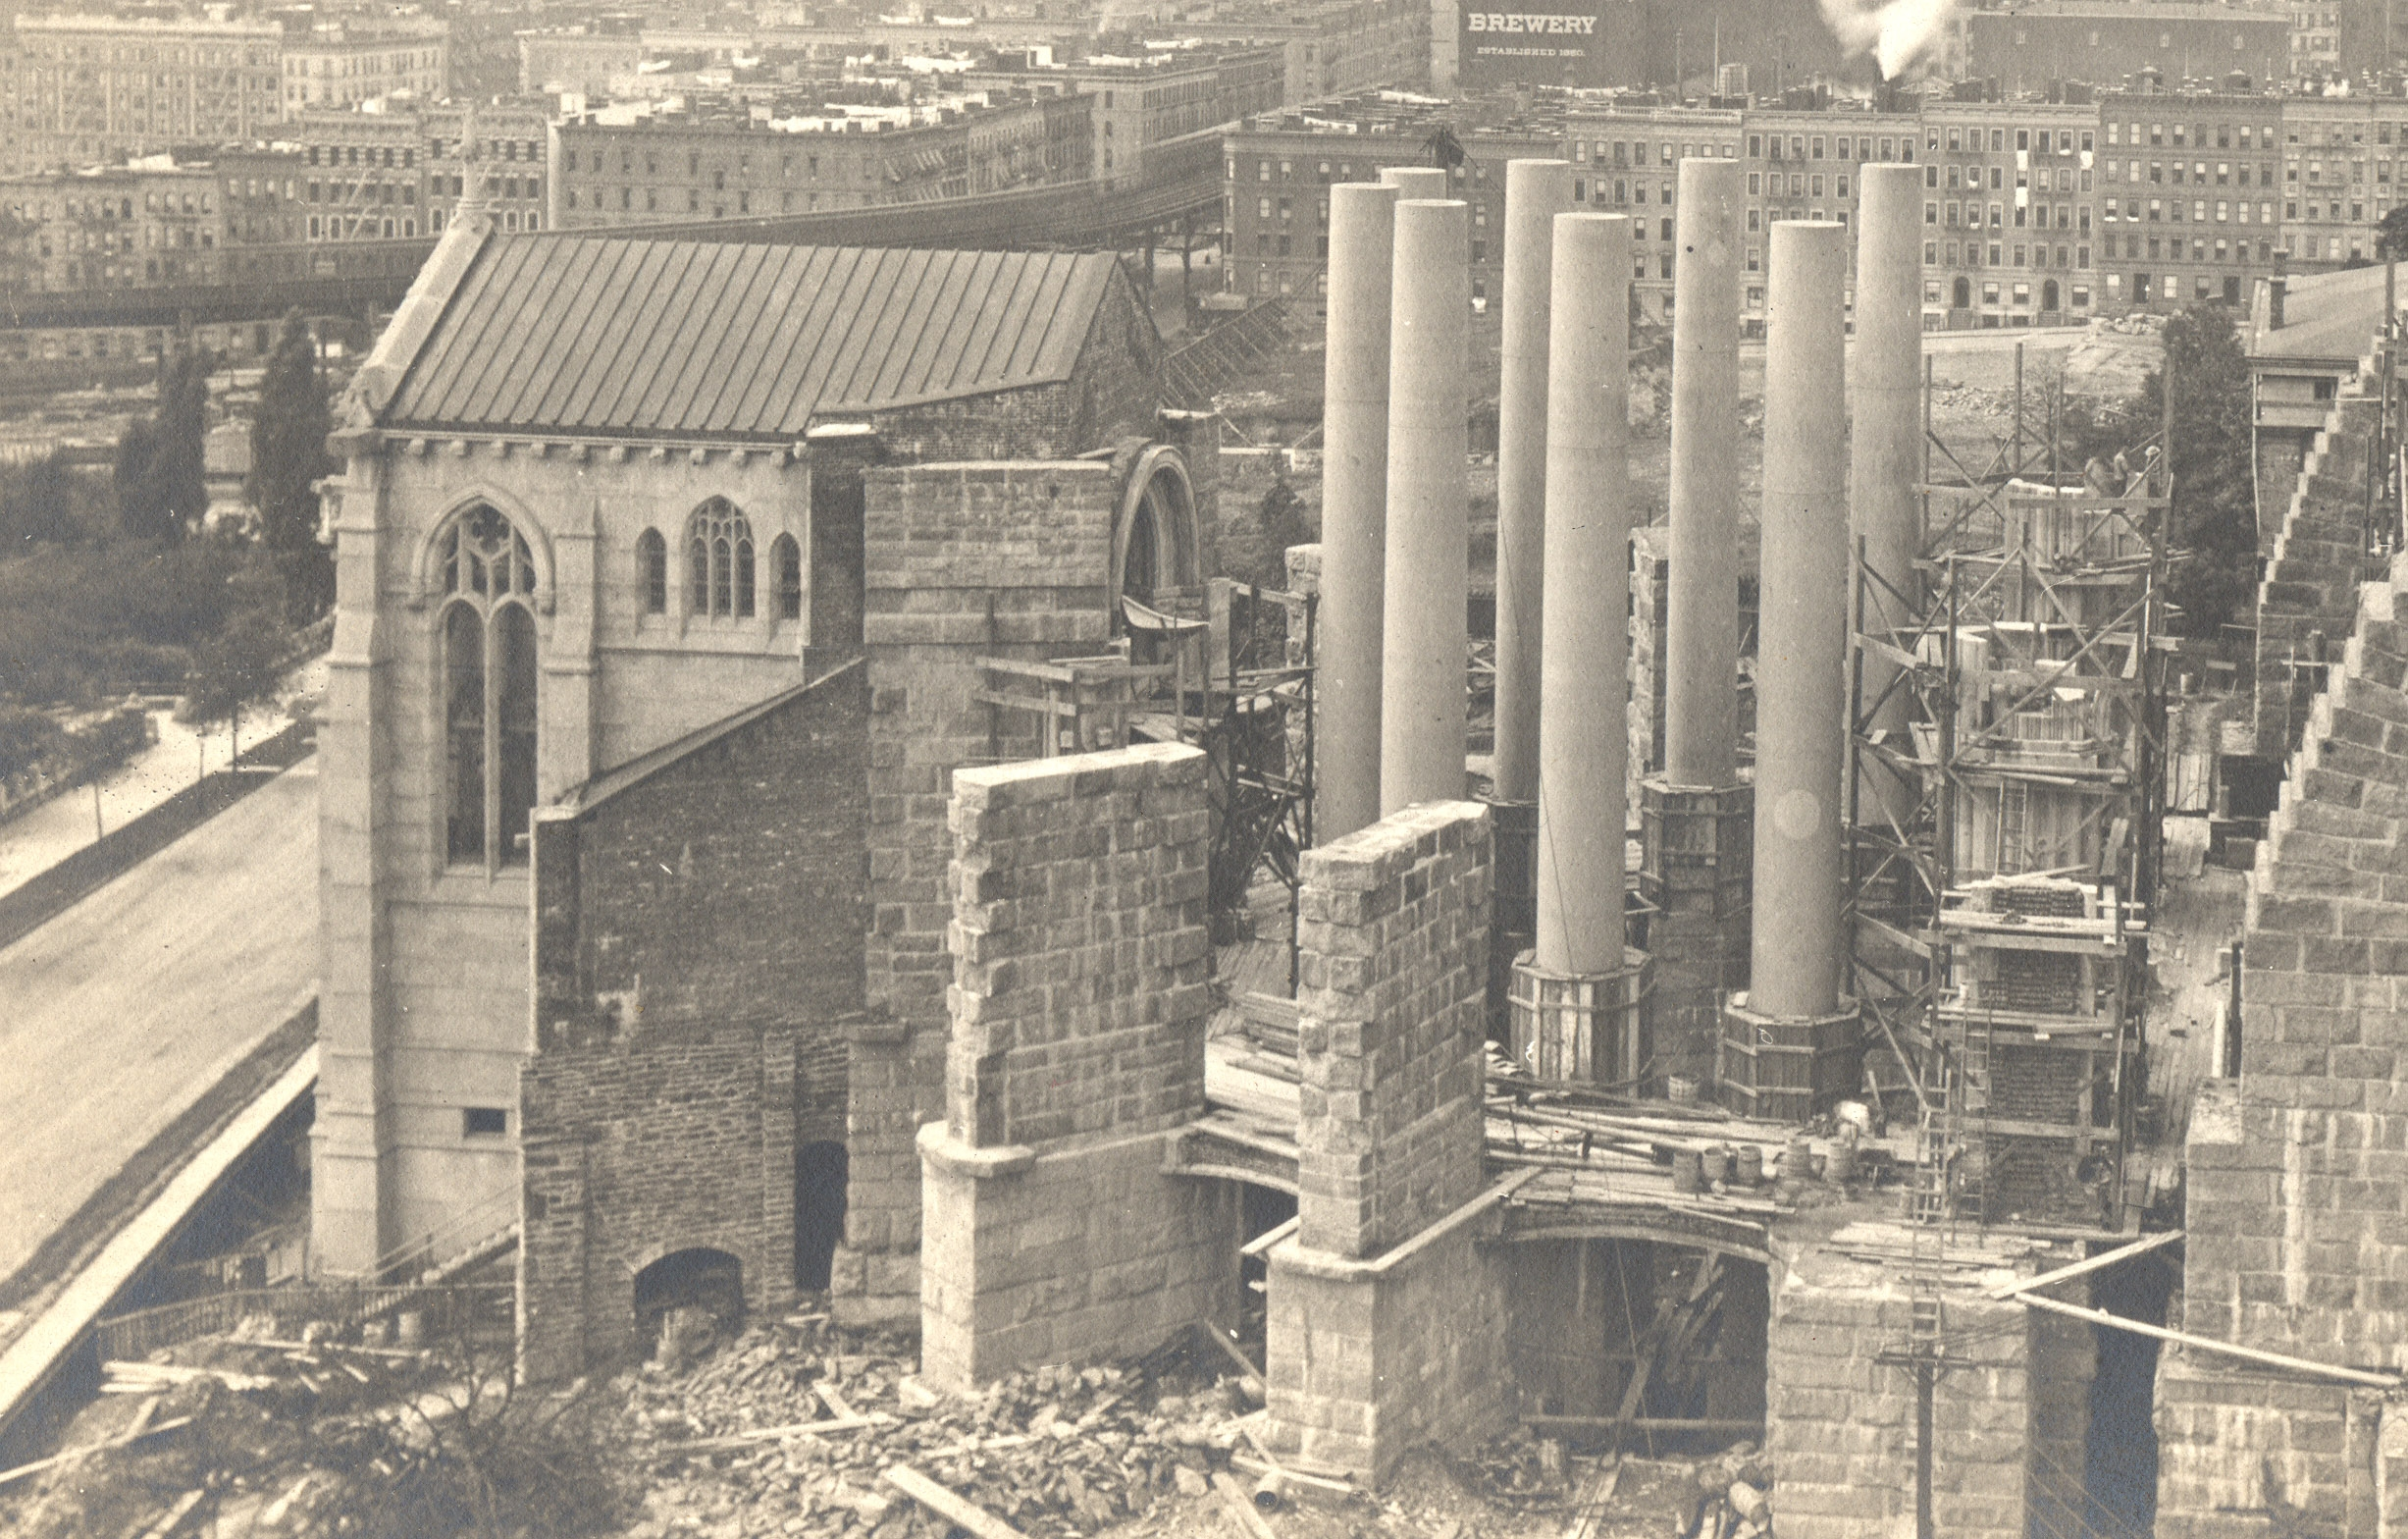 1905: Having spent most of their first decade building a gigantic foundation, thirteen years into construction the cathedral had only just erected the eight granite columns for the choir. They would cost $25,000 (today, $761,000) each. Credit: Episcopal Dioceses Archive of New York